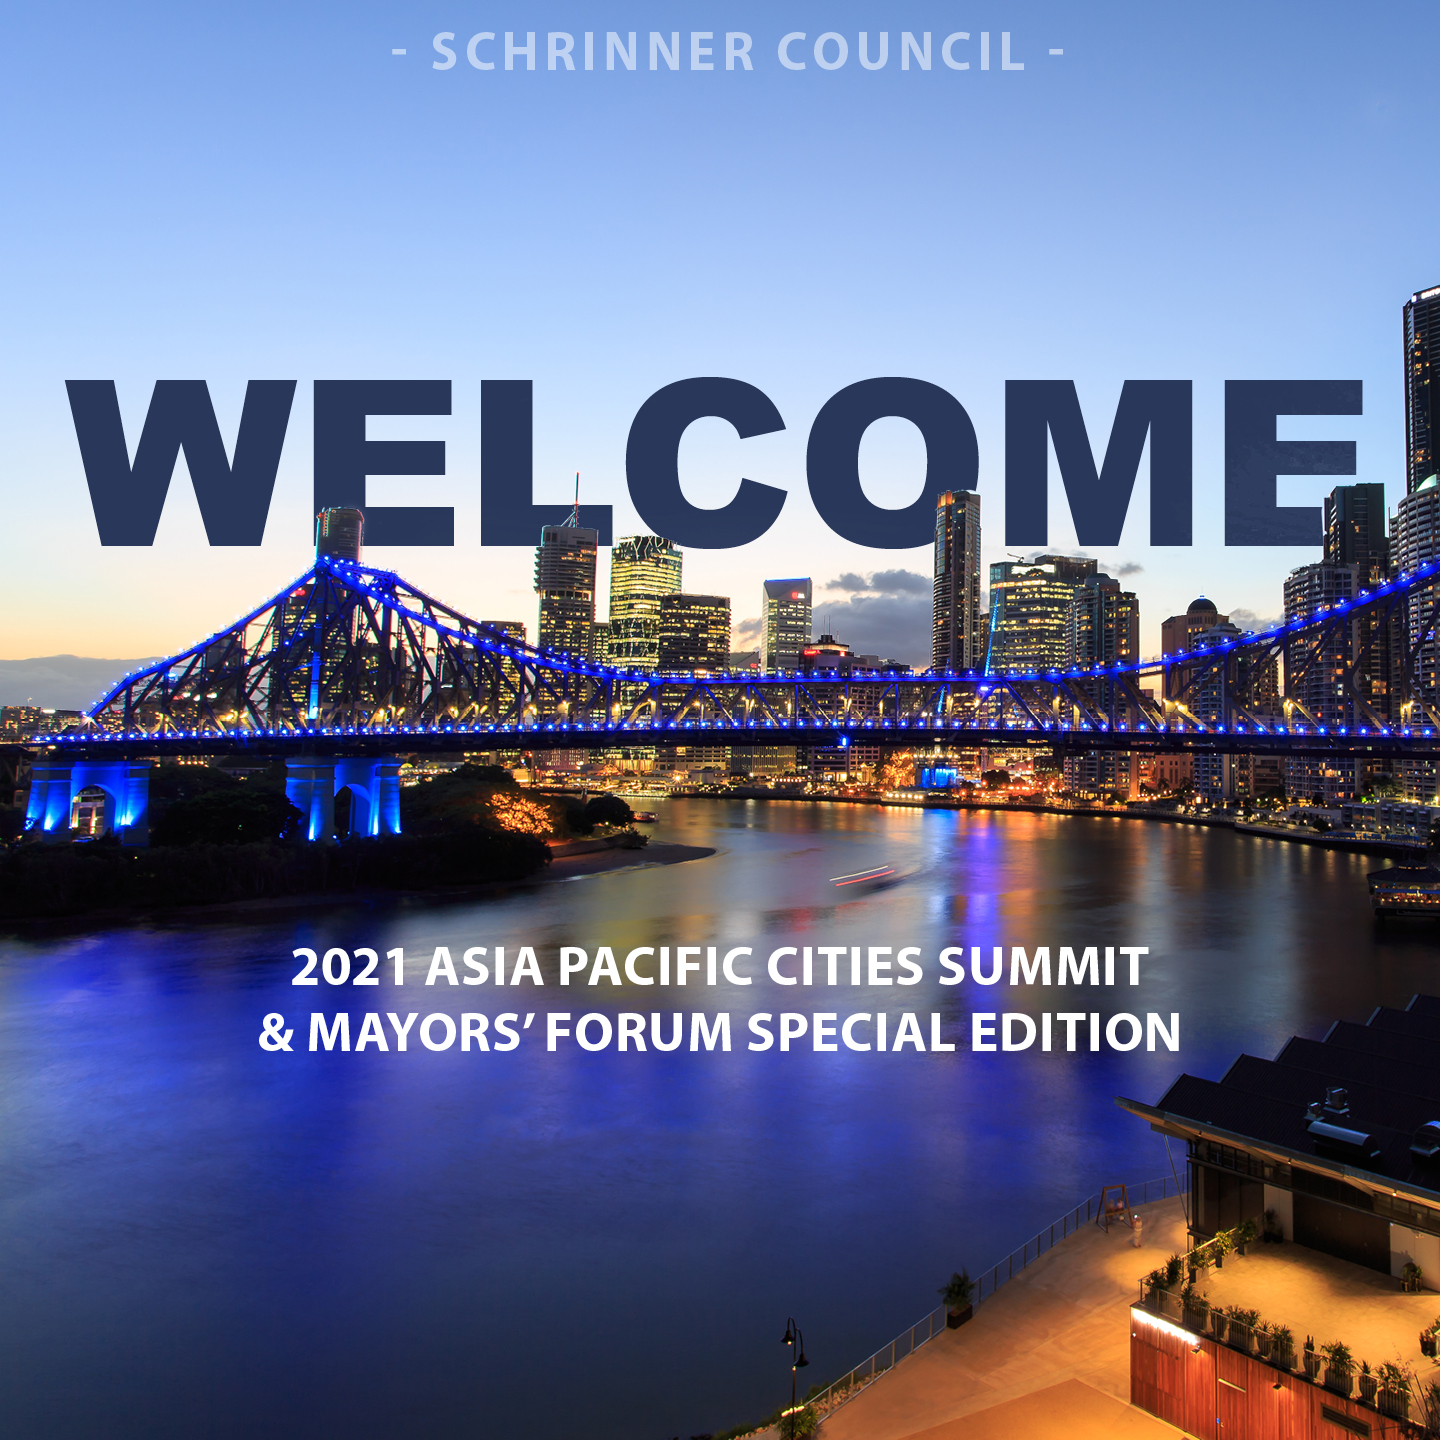 Welcome to the Asia Pacific Cities Summit.